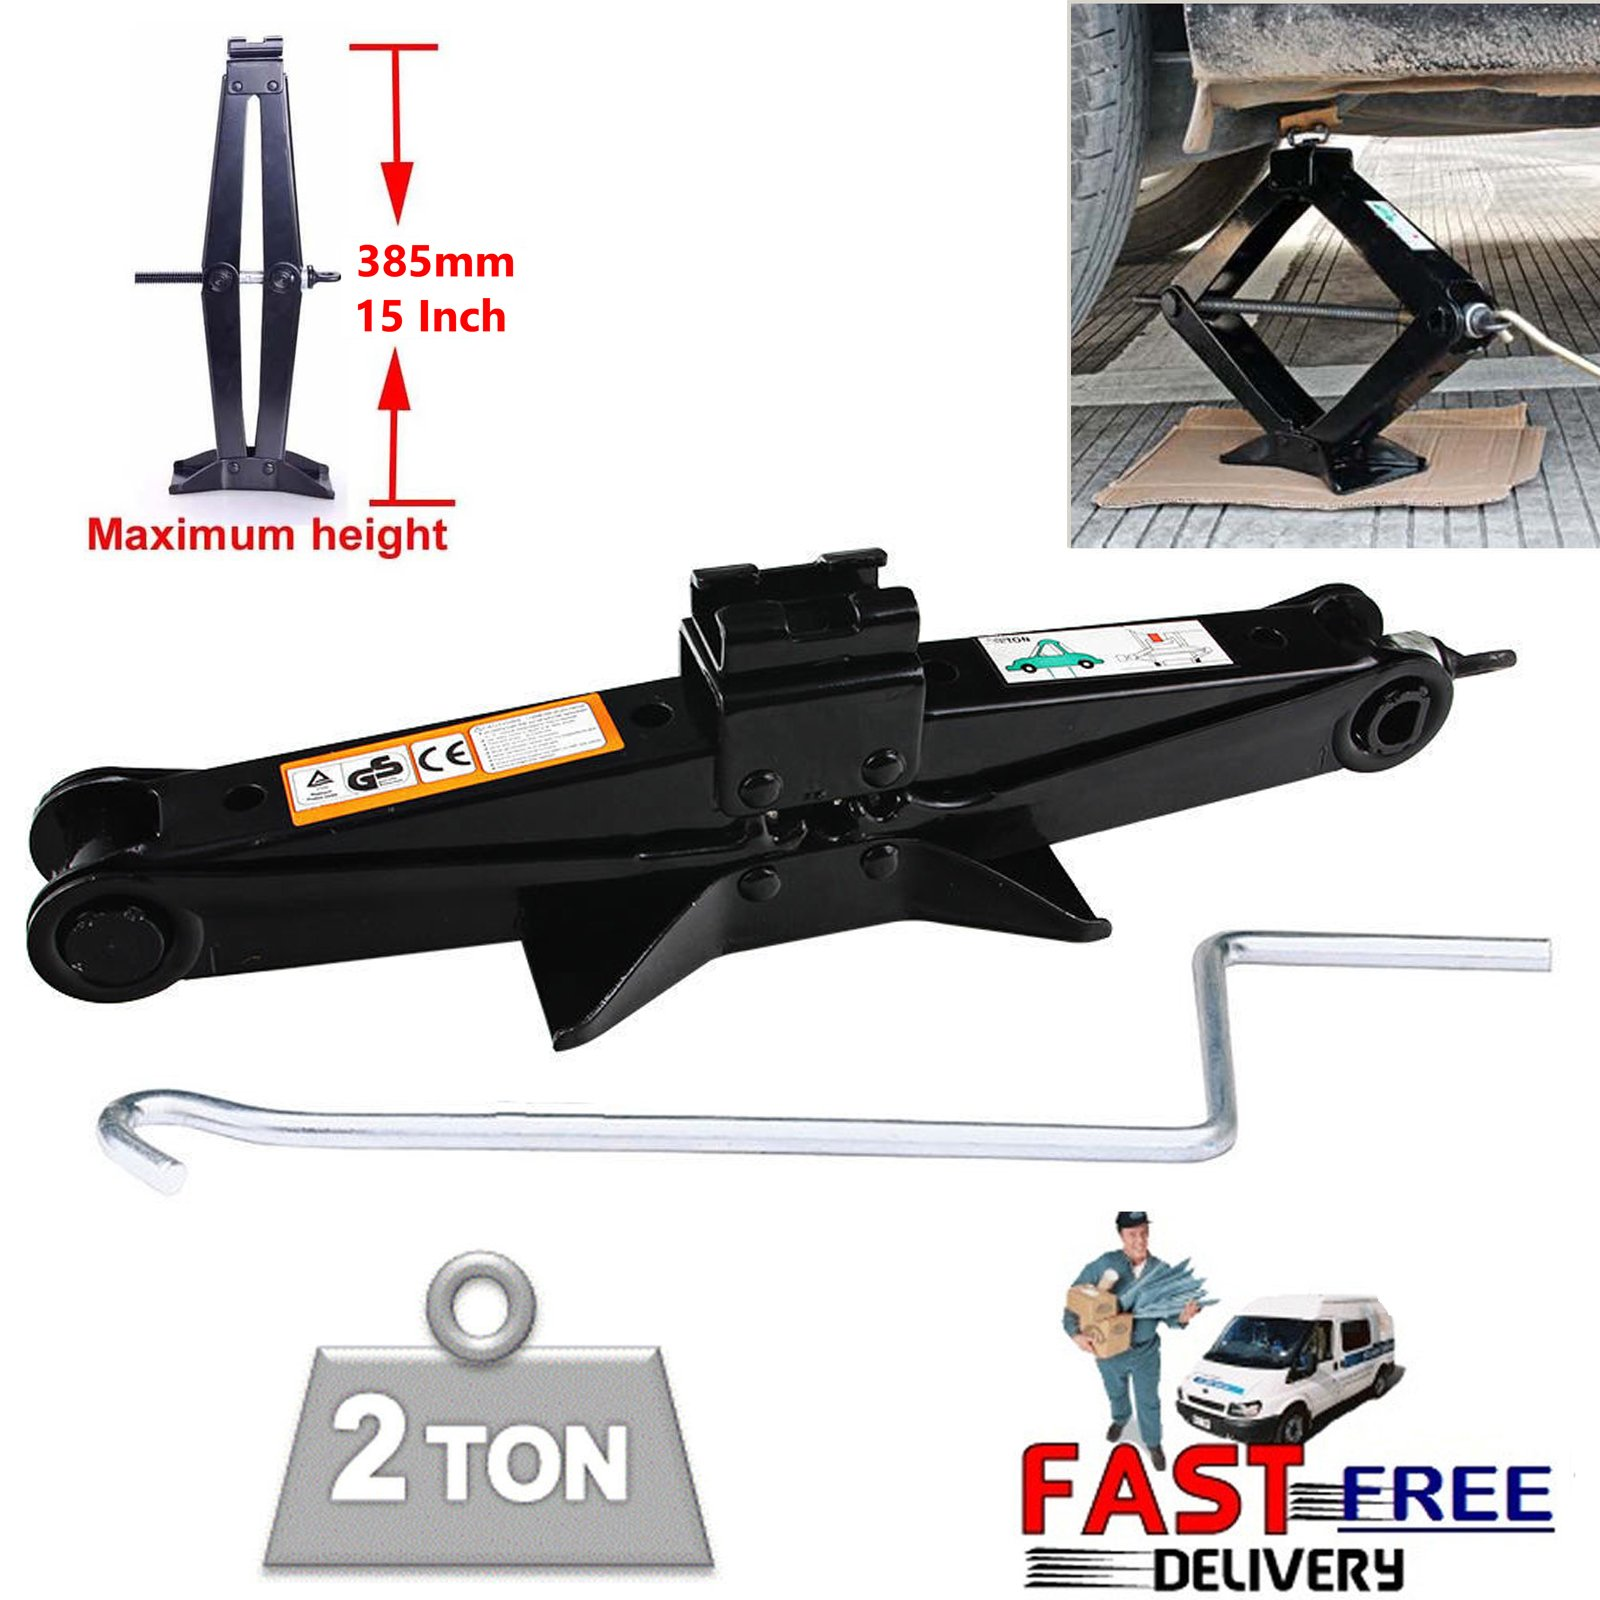 DICN 1PCS Black Scissor Jack Steel Wind Up Leveling with Crank Handle Manual 2 Ton 4.2-15Inch Capacity High Lift - Spare Tire Changing Tools for Car Van Truck (US Ship) by DICN (Image #1)